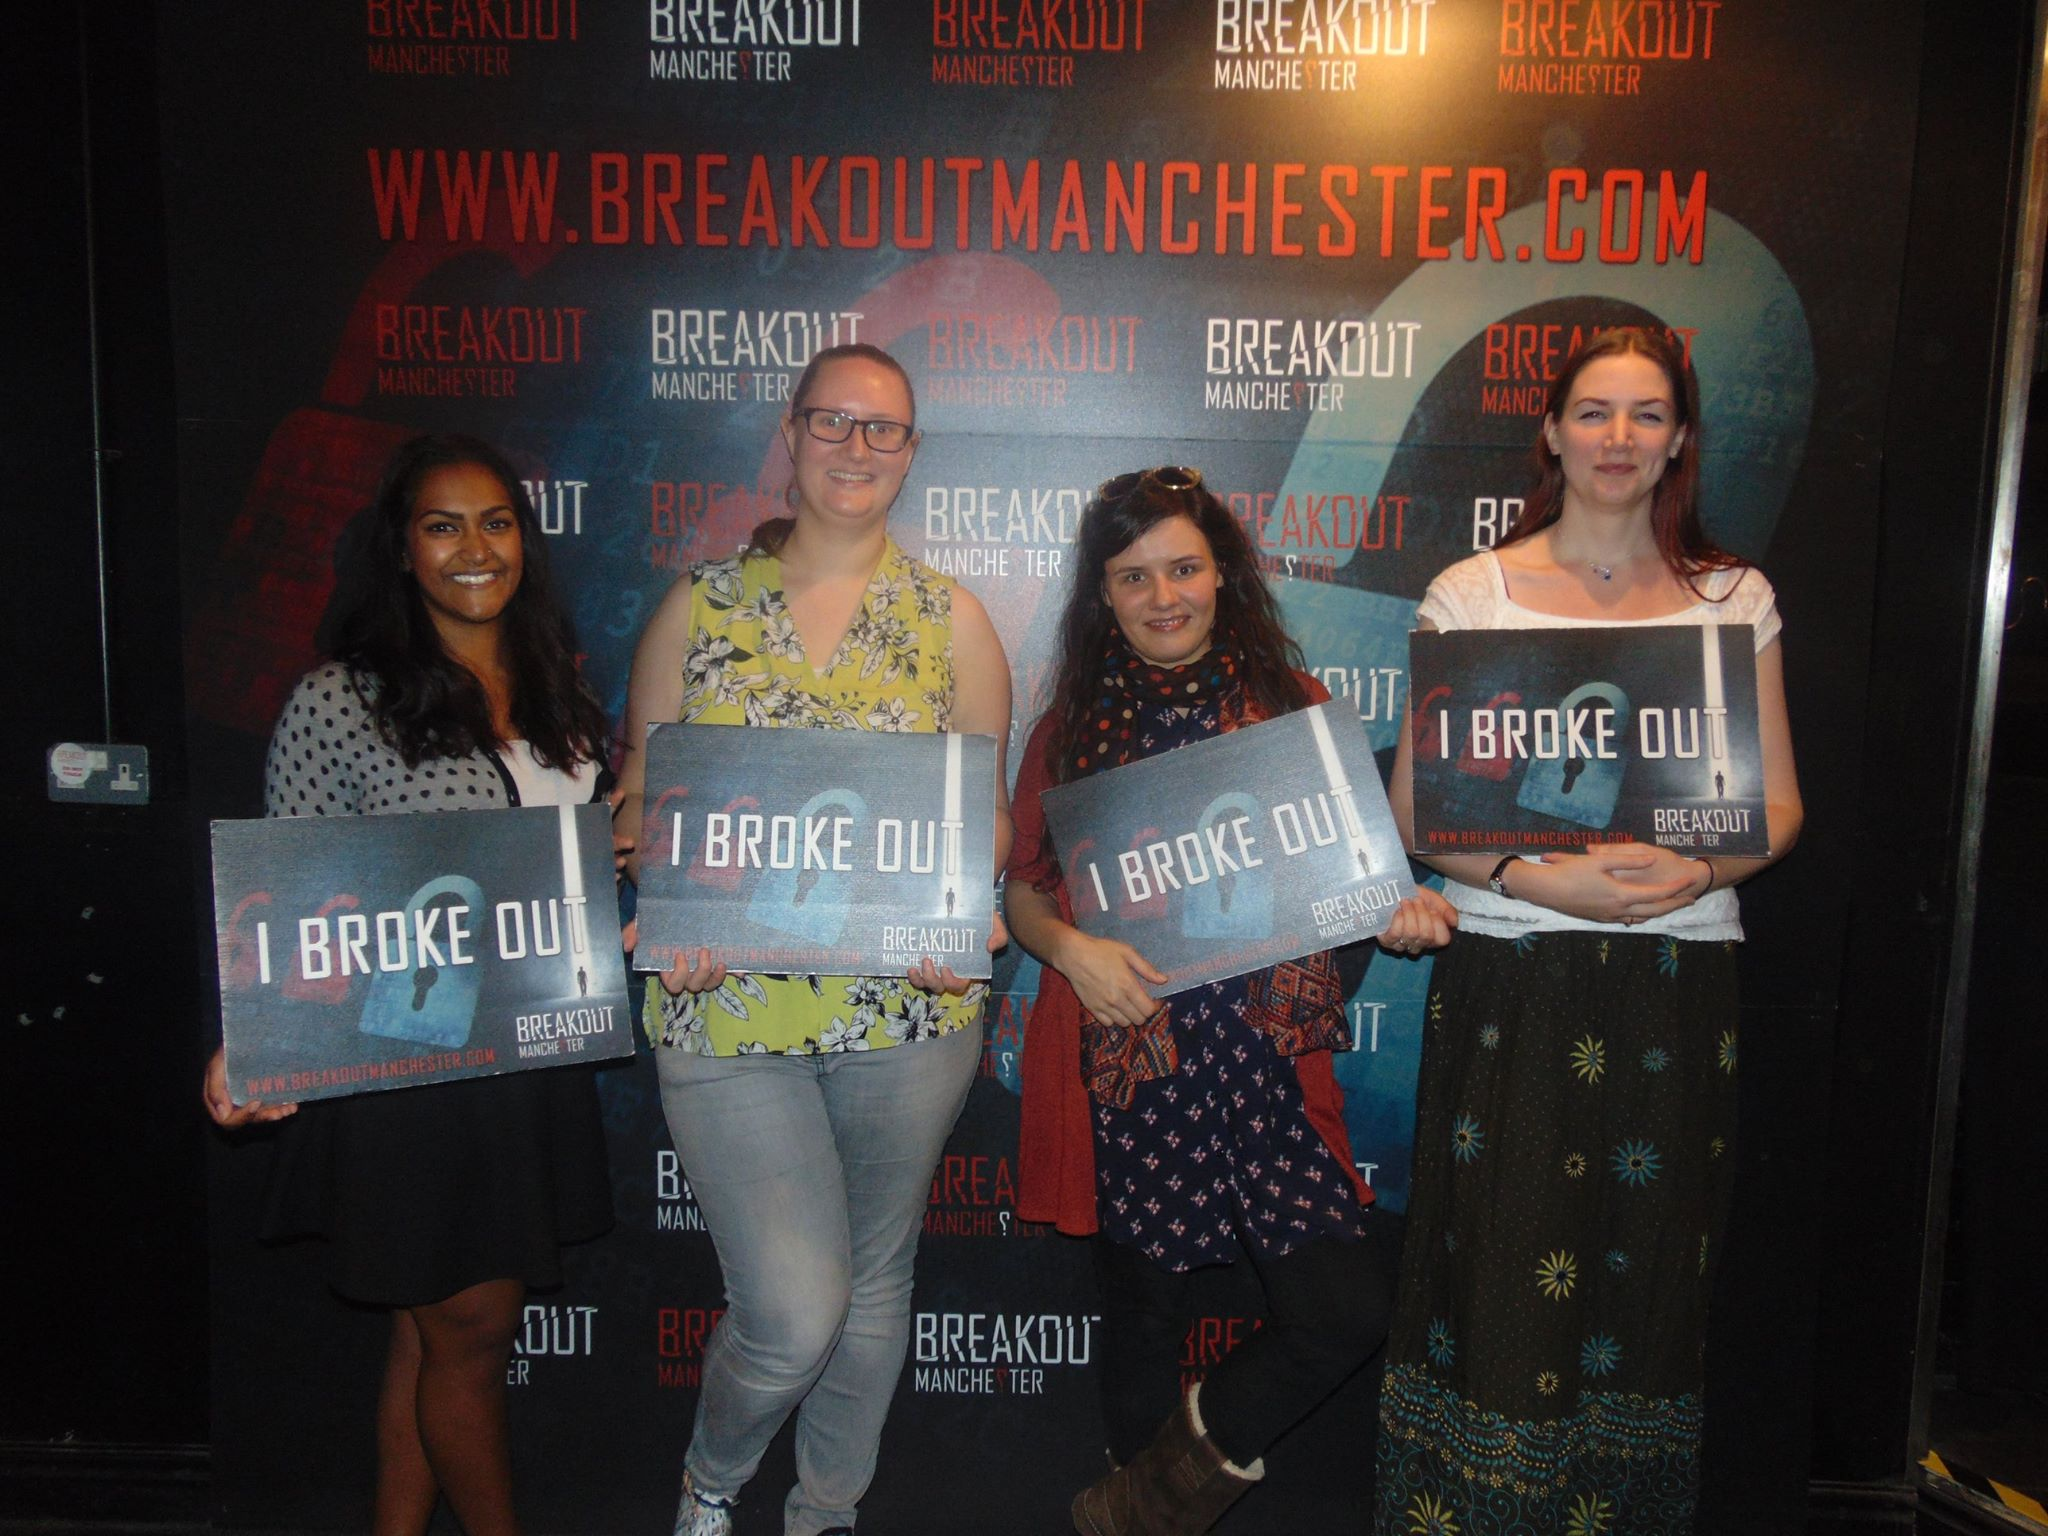 Breakout Manchester – Reclassified